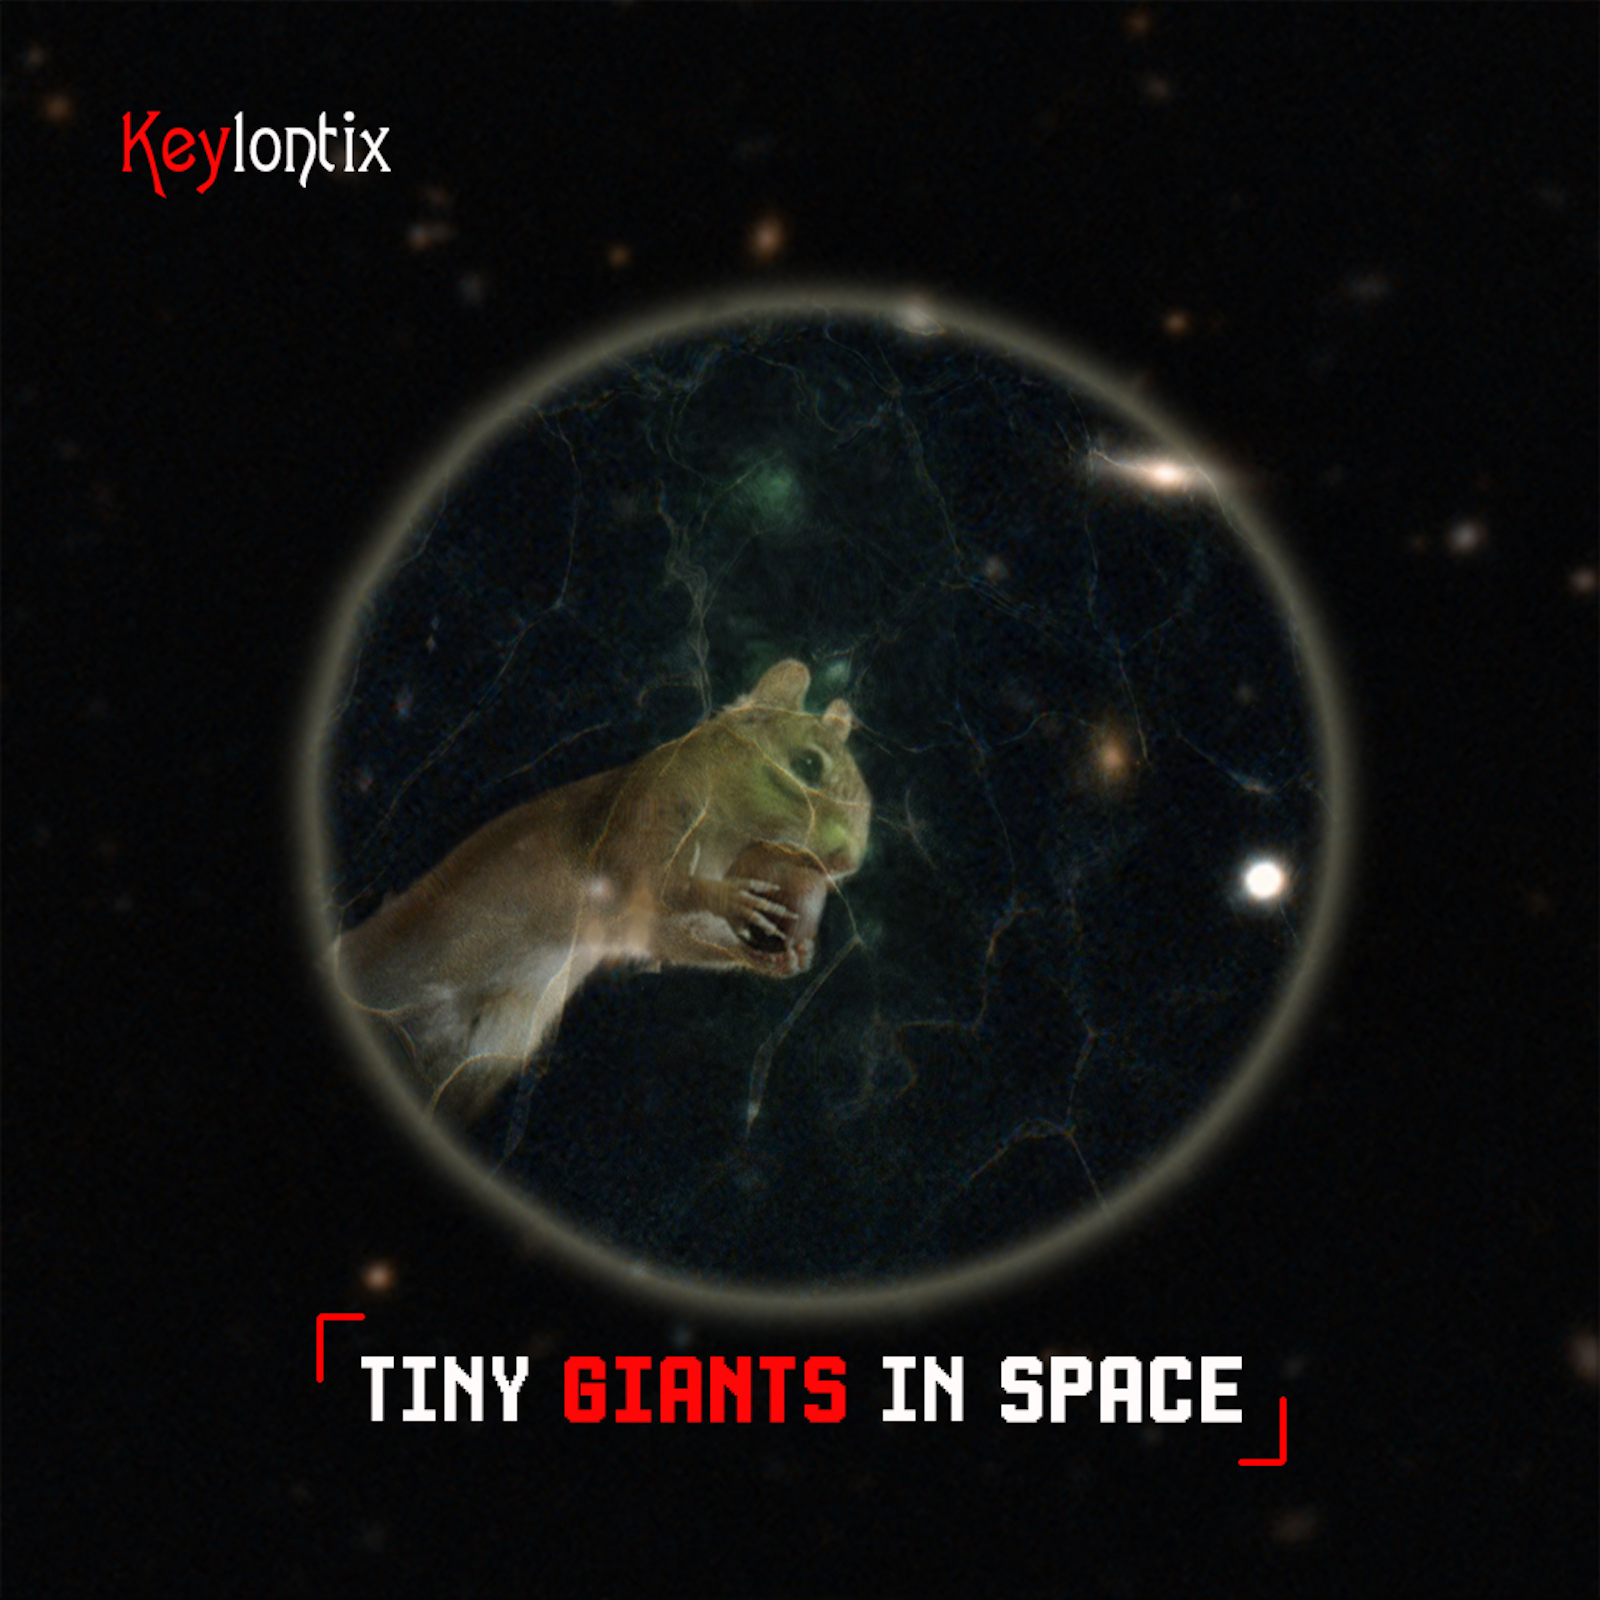 Tiny_Giants_in_Space_1